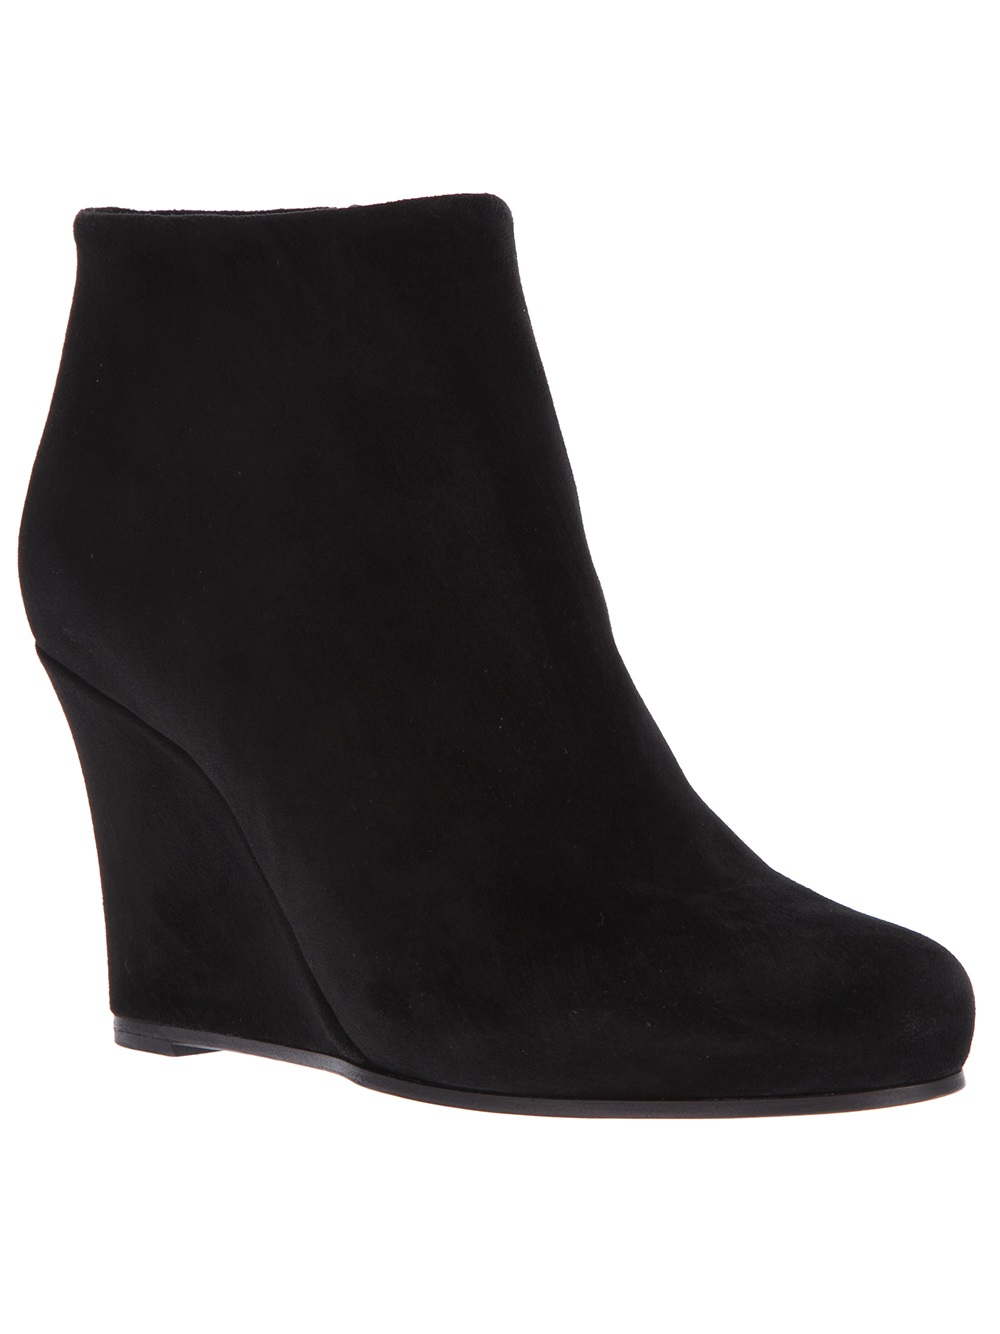 jil sander wedge ankle boot in black lyst